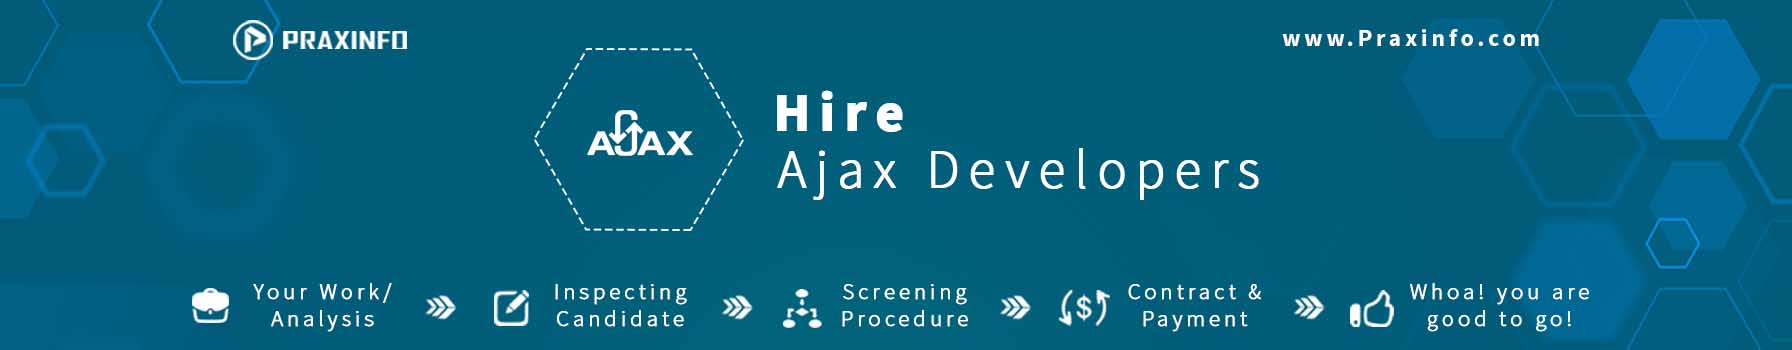 hire-Ajax-developer.jpg